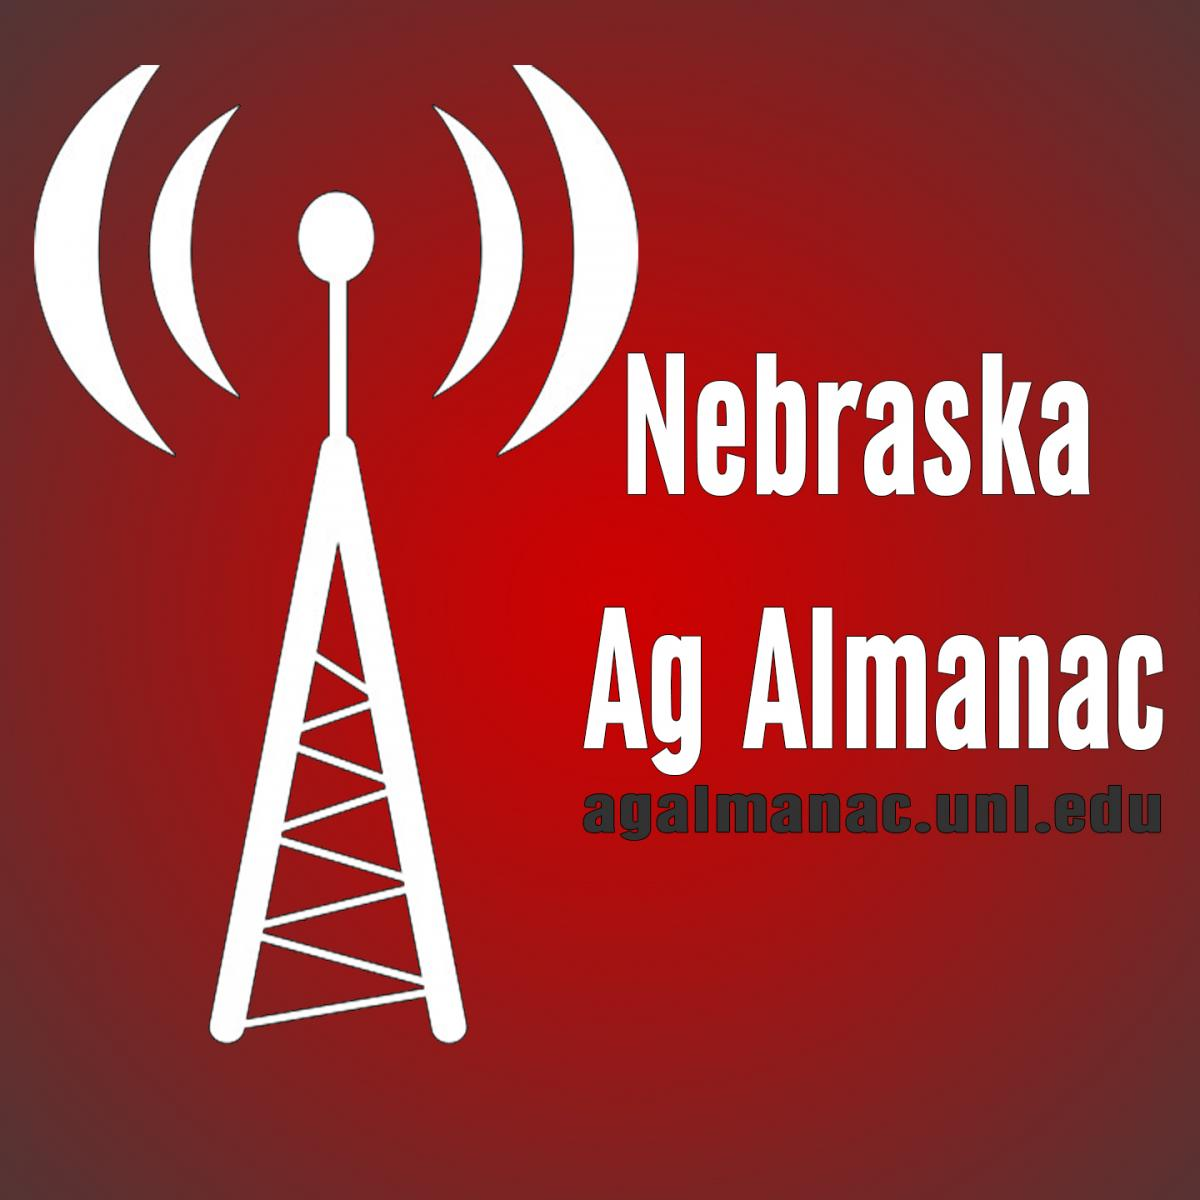 Nebraska Ag Almanac graphic